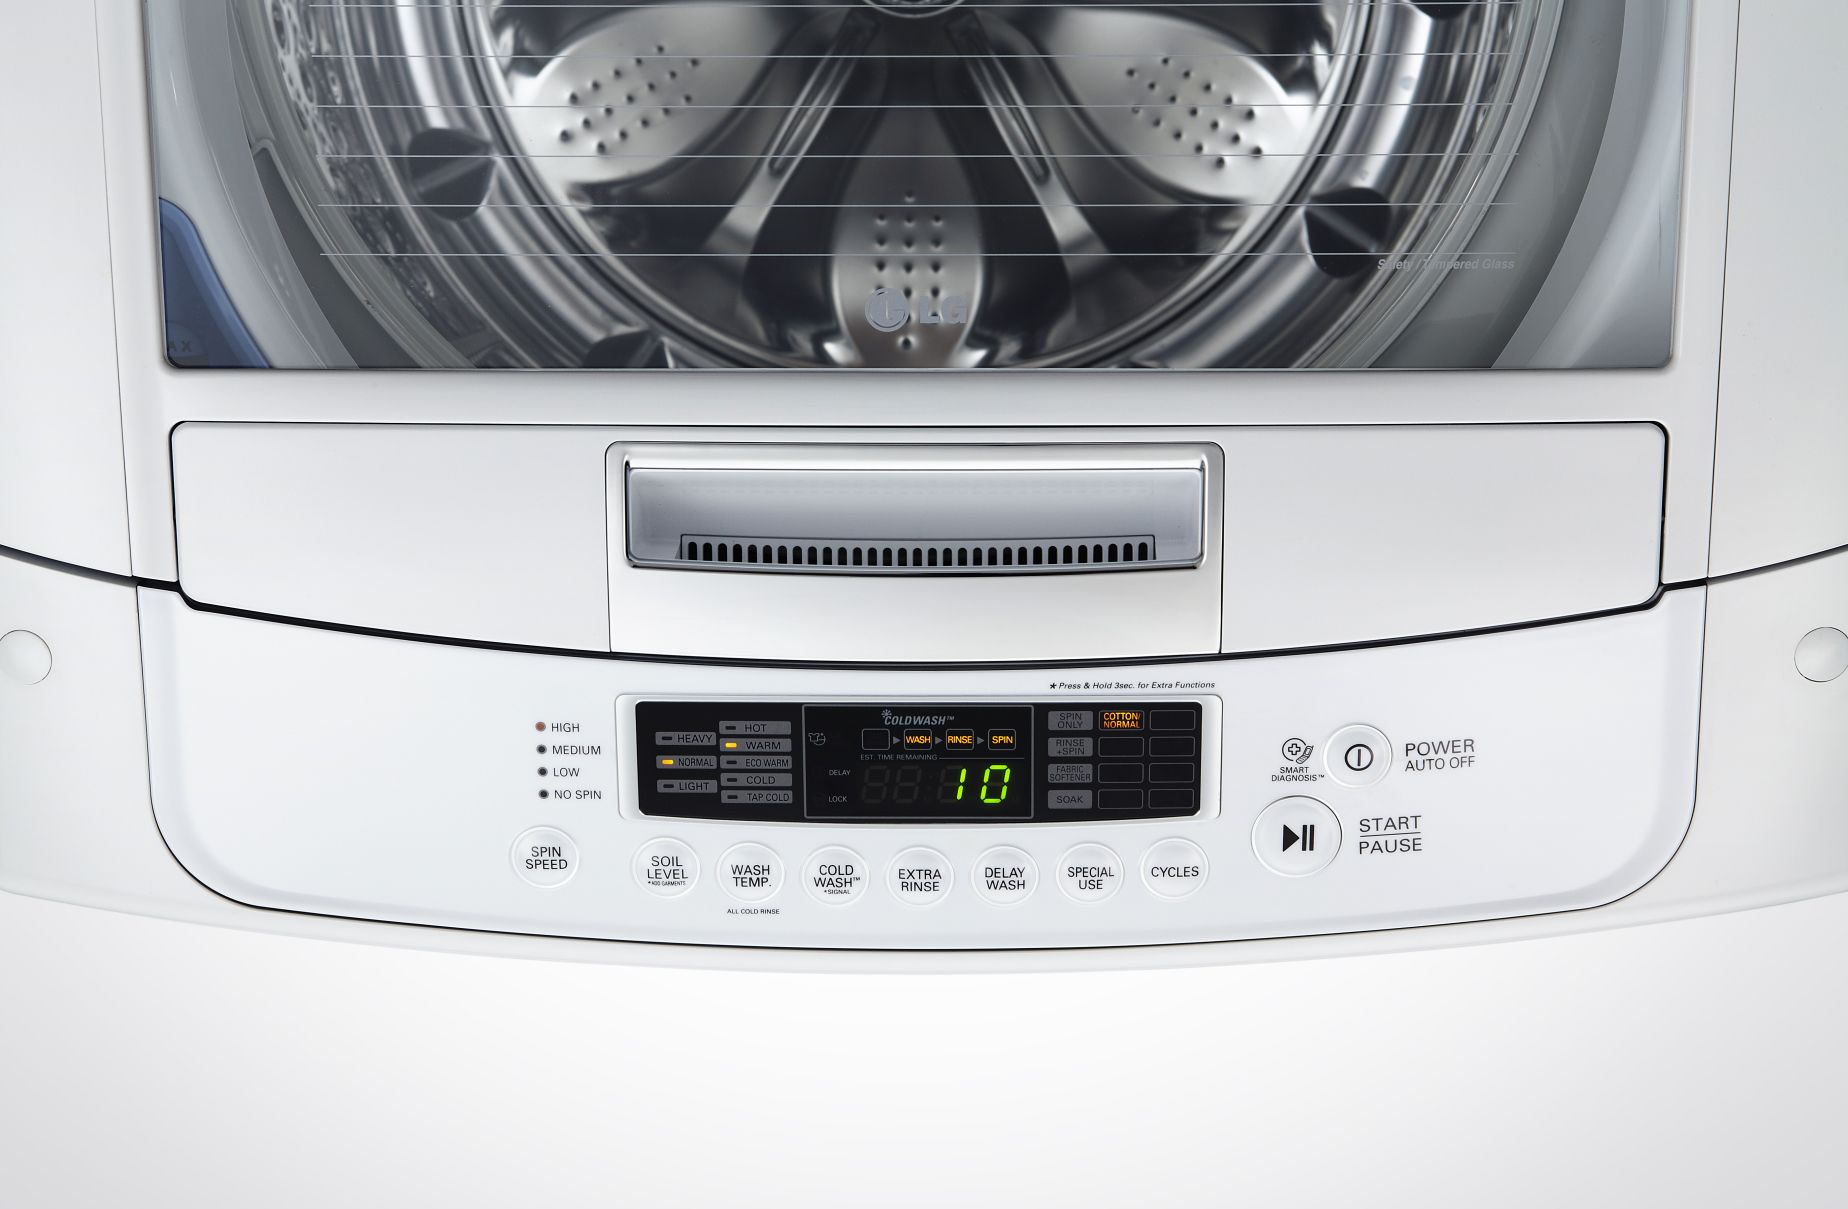 LG WT1101CW 4.1 cu. ft. High-Efficiency Top-Load Washer - White